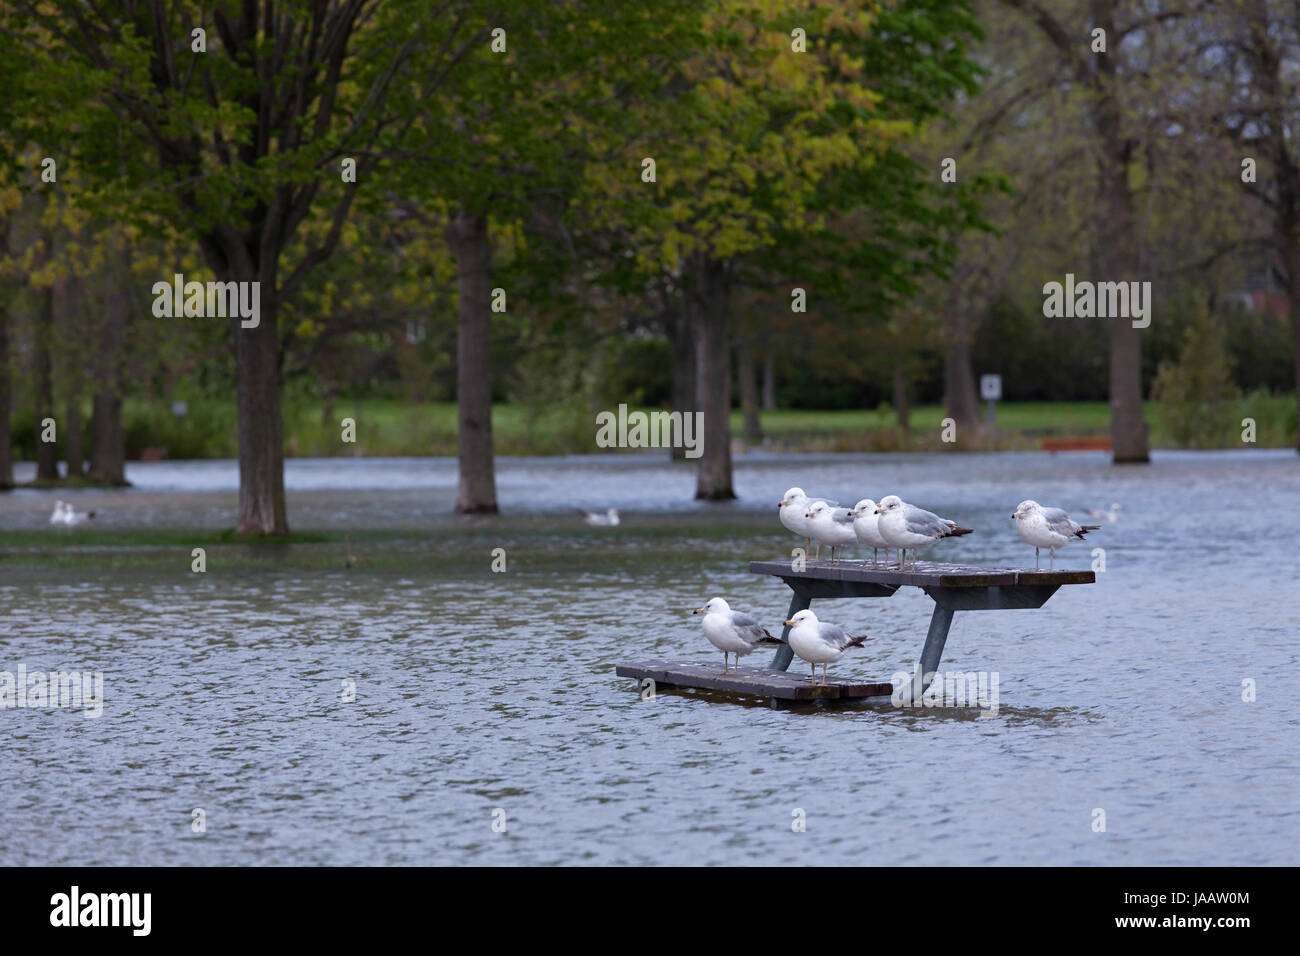 Ring-billed gulls 'Larus delawarensis' standing on a park bench surrounded by flood water at a flooded park - Stock Image